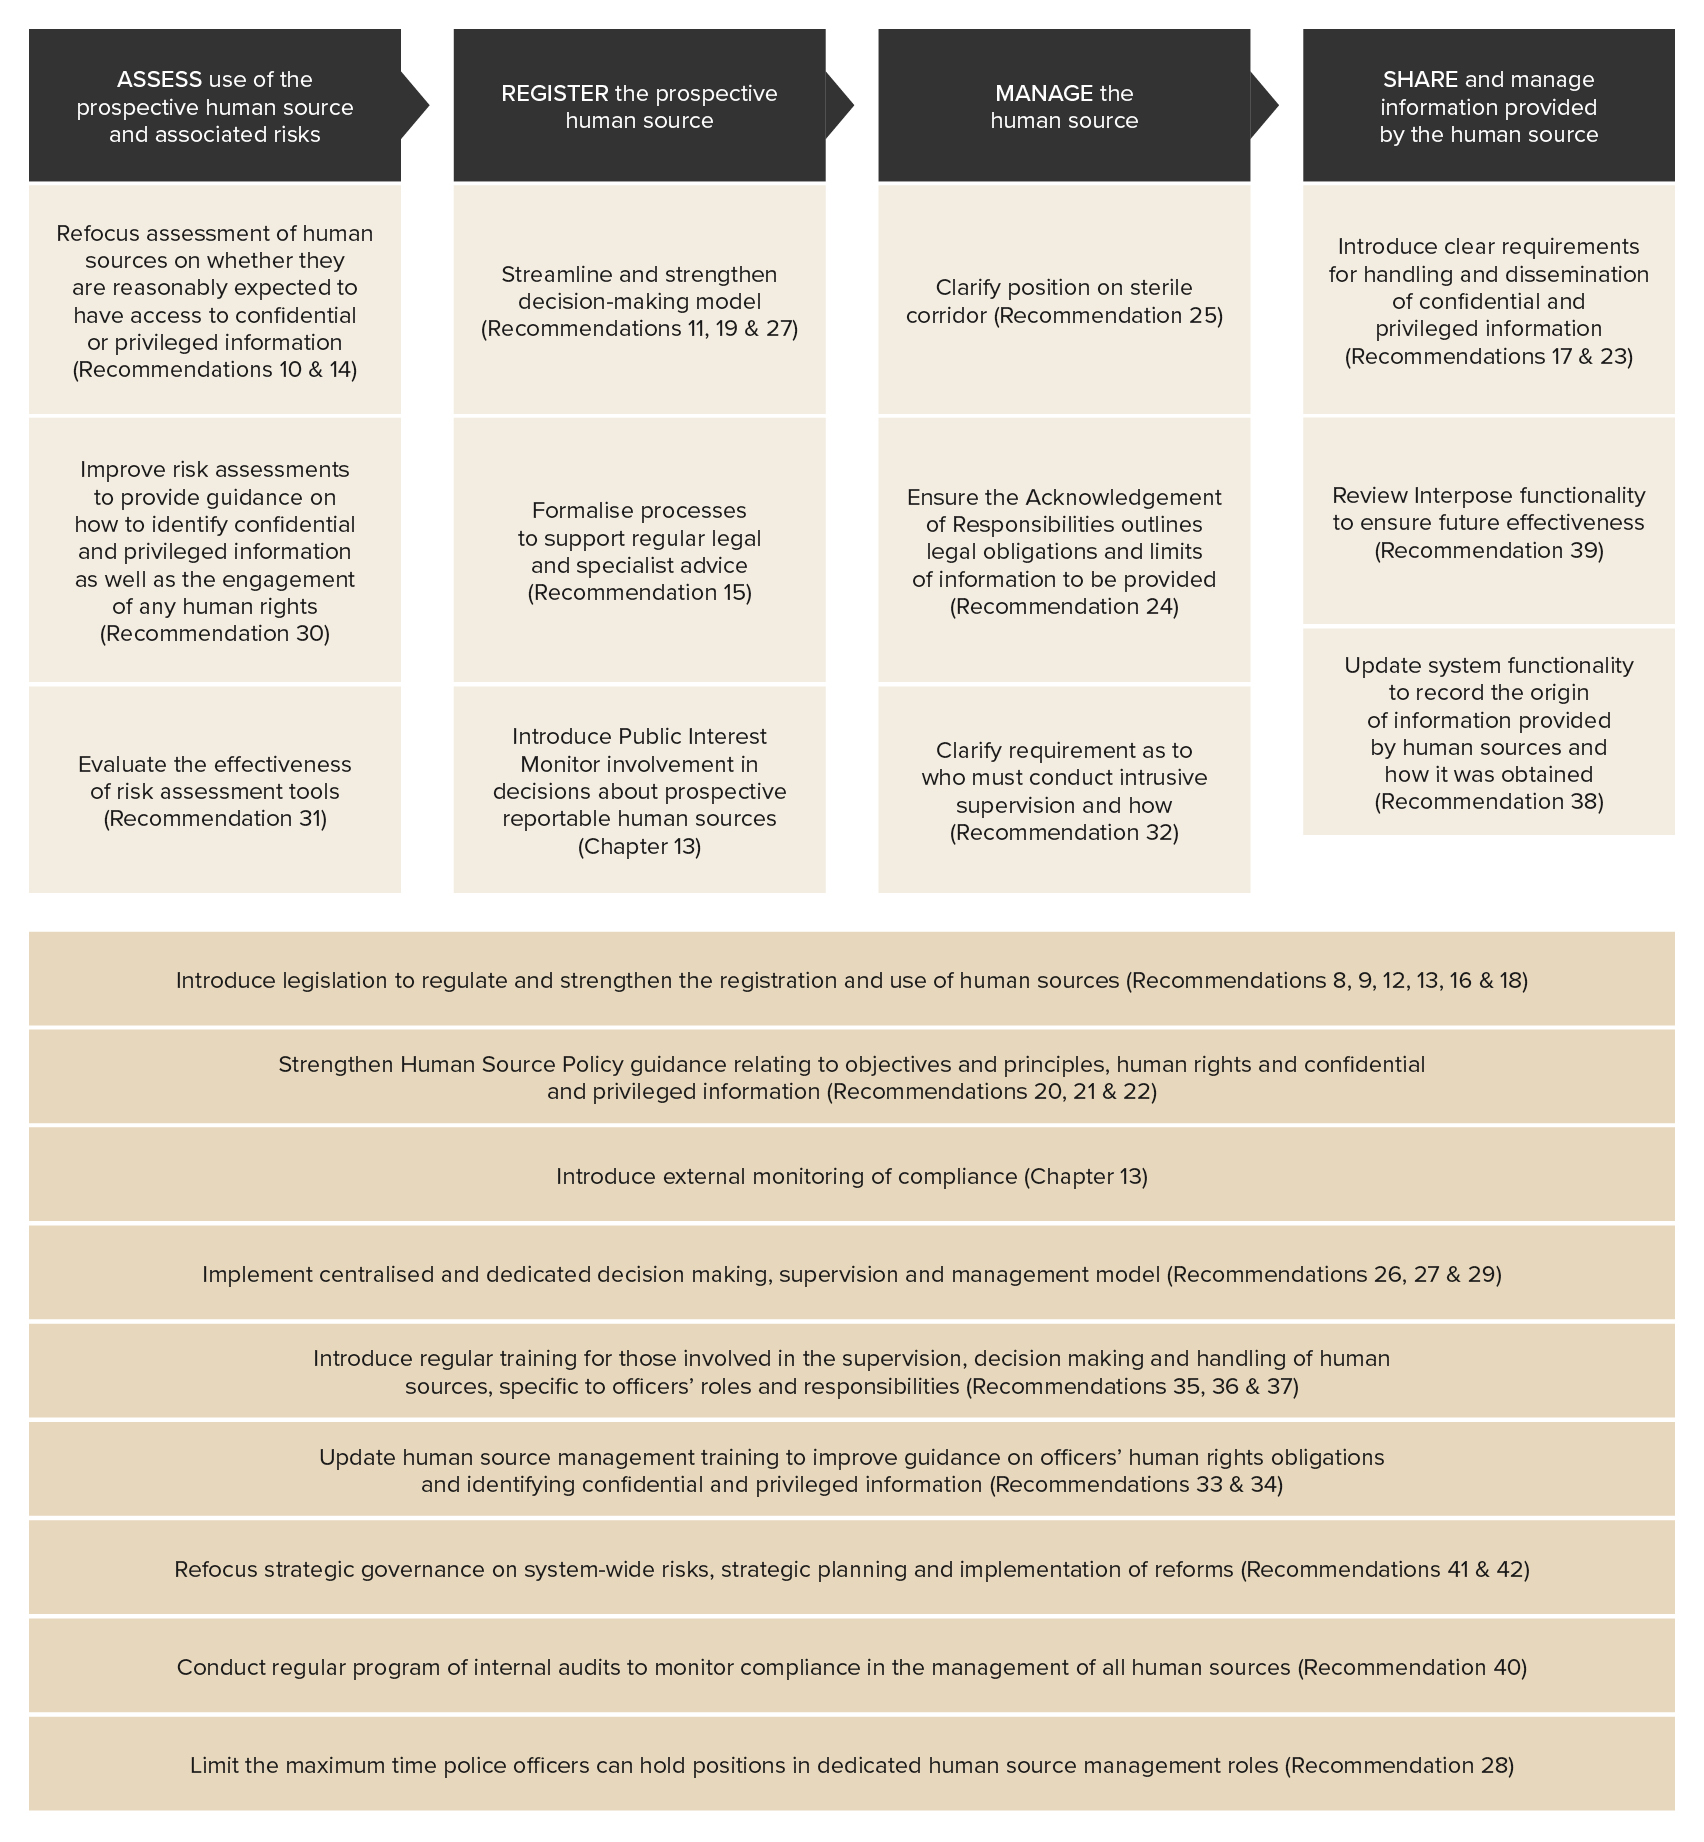 Figure 12.3 - Overview of recommendations to strengthen Victoria Police's human source management framework